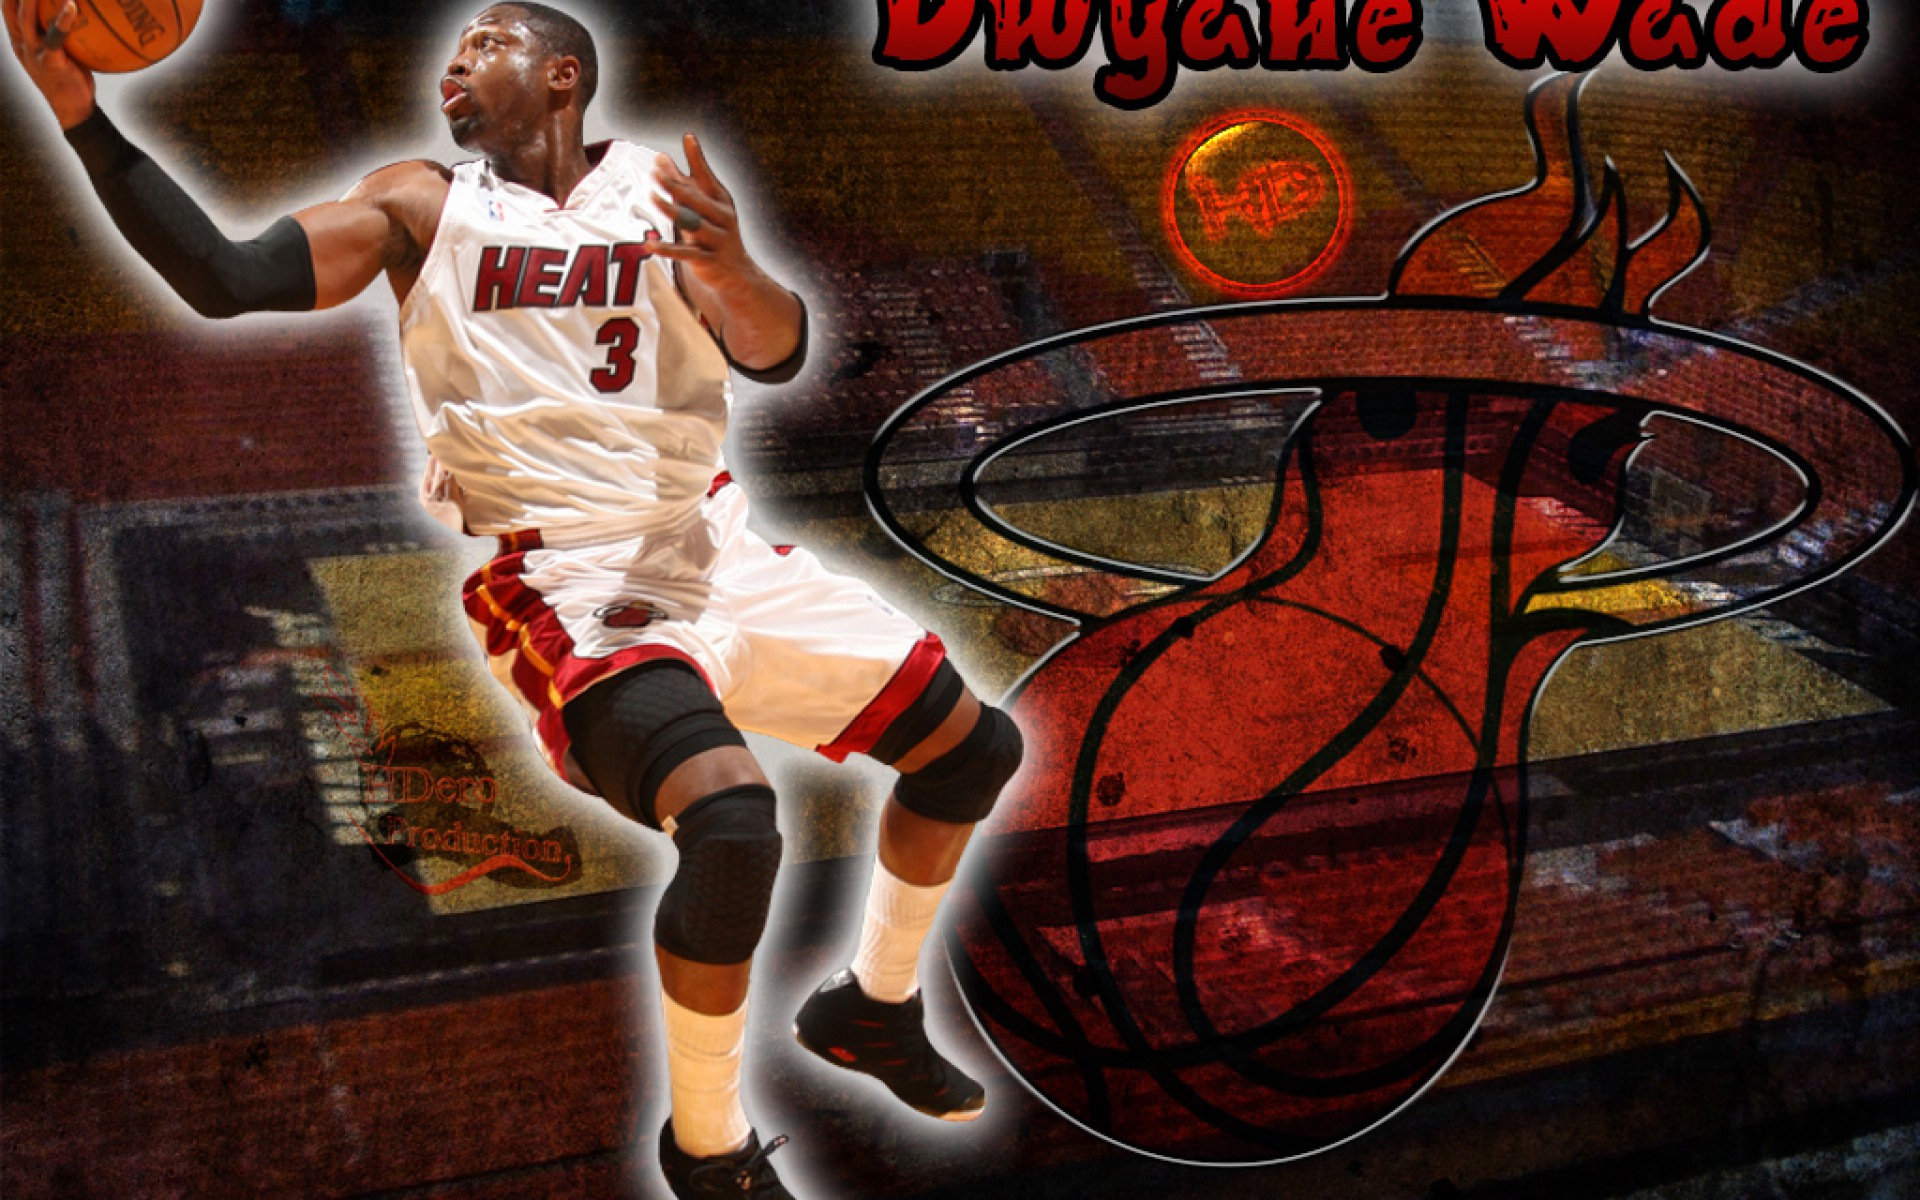 Dwyane Wade 2013 wallpaper High Quality WallpapersWallpaper Desktop 1920x1200